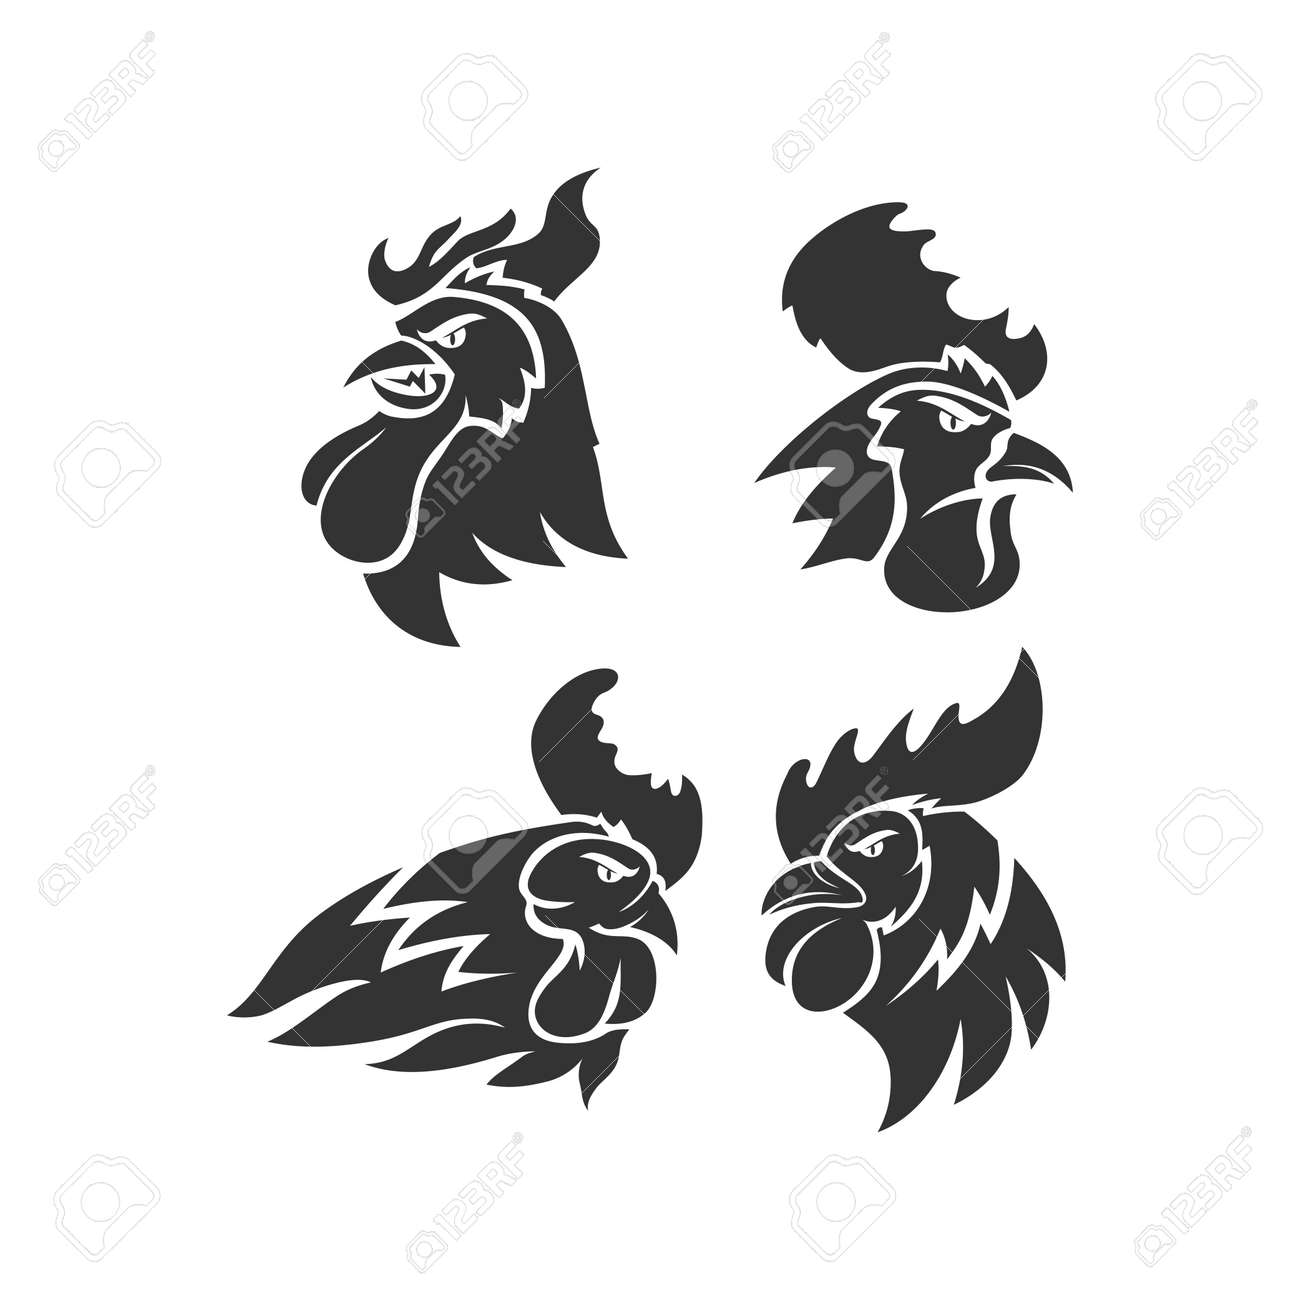 Chicken Rooster Head Mascot Animal Template Silhouette Set - 169326700